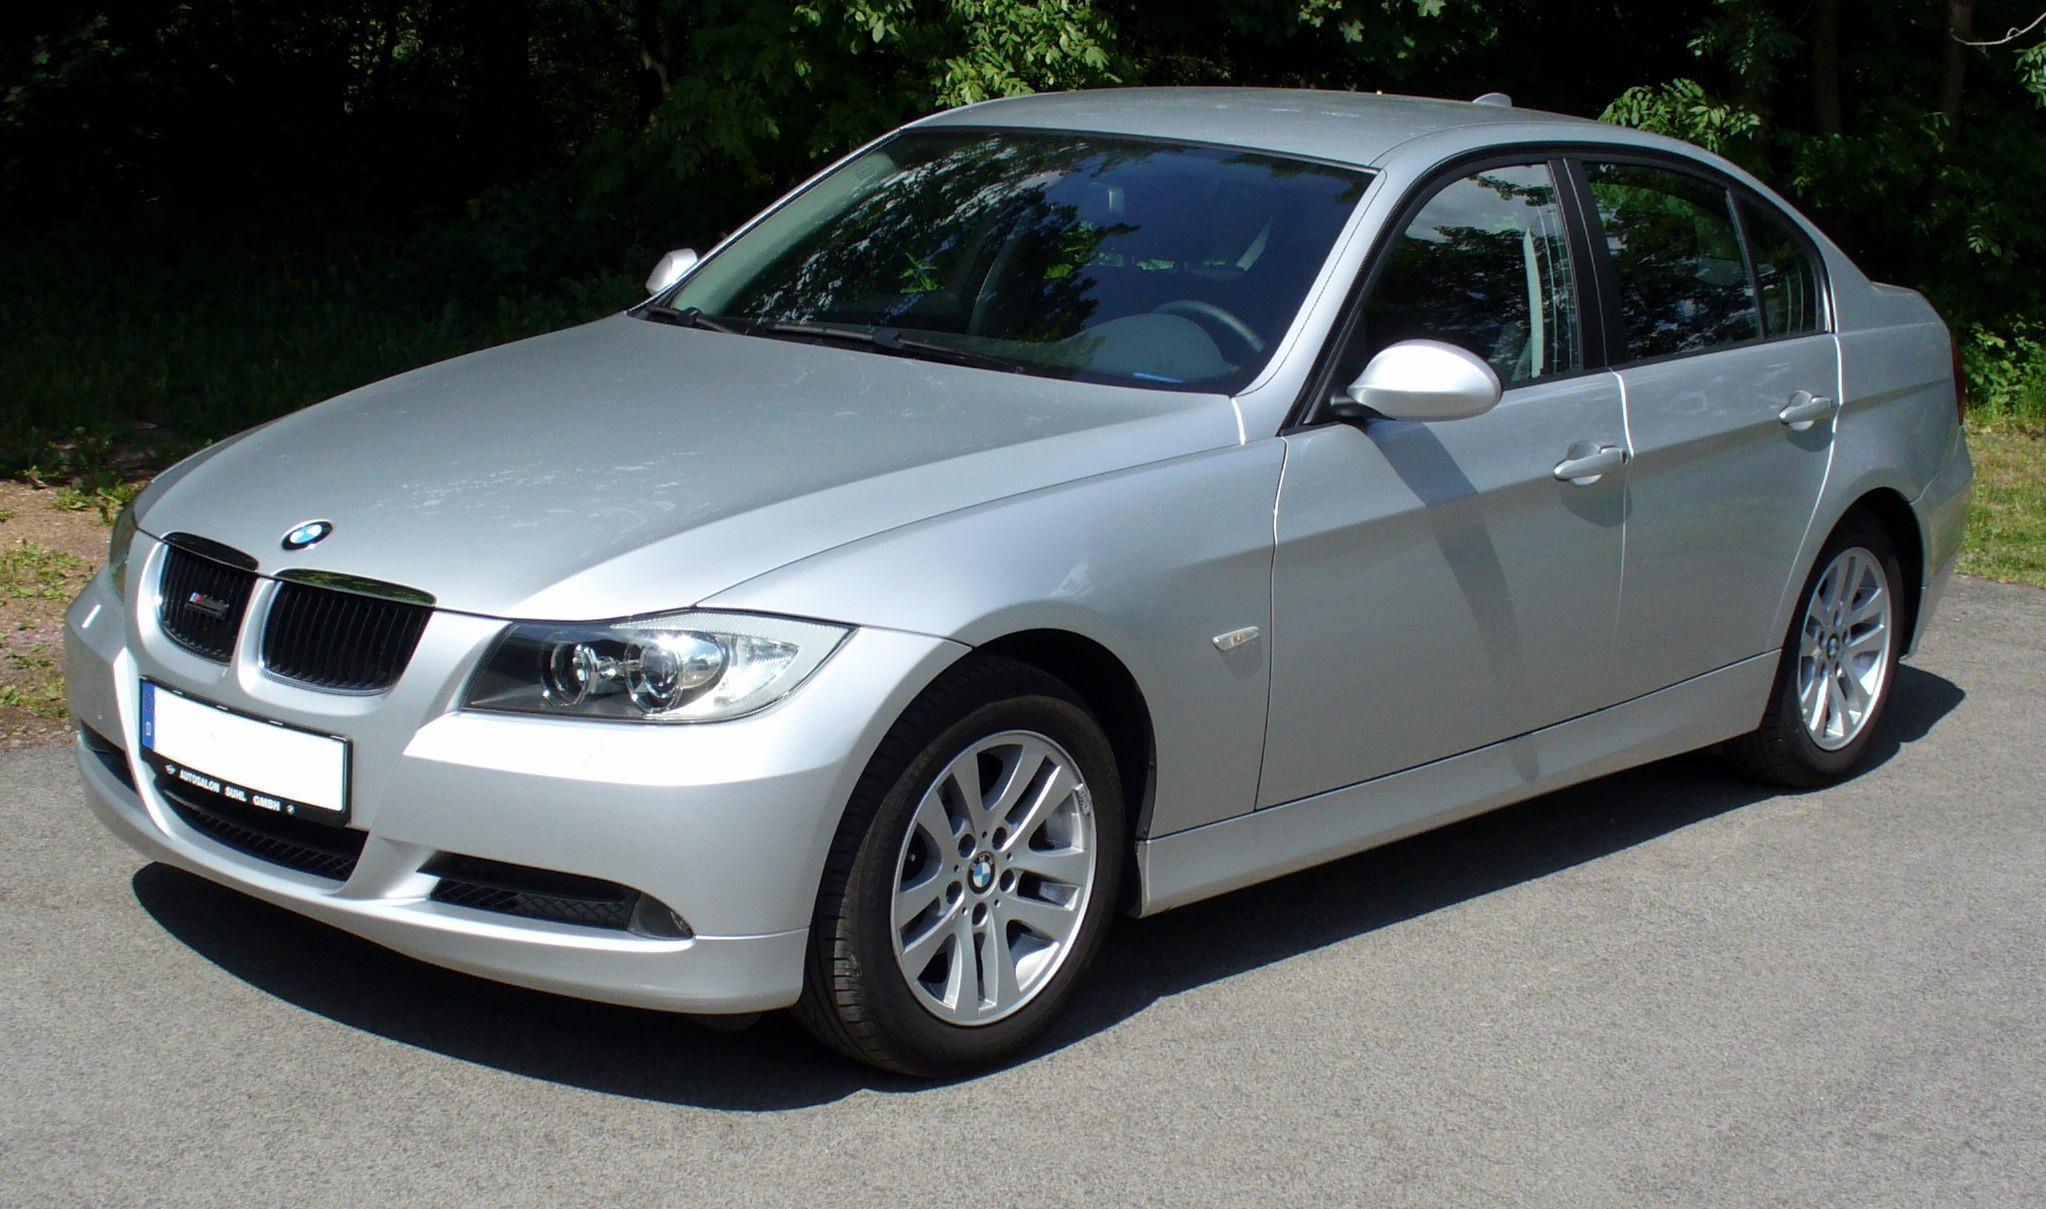 Bmw 318i 1998 Review Amazing Pictures And Images Look